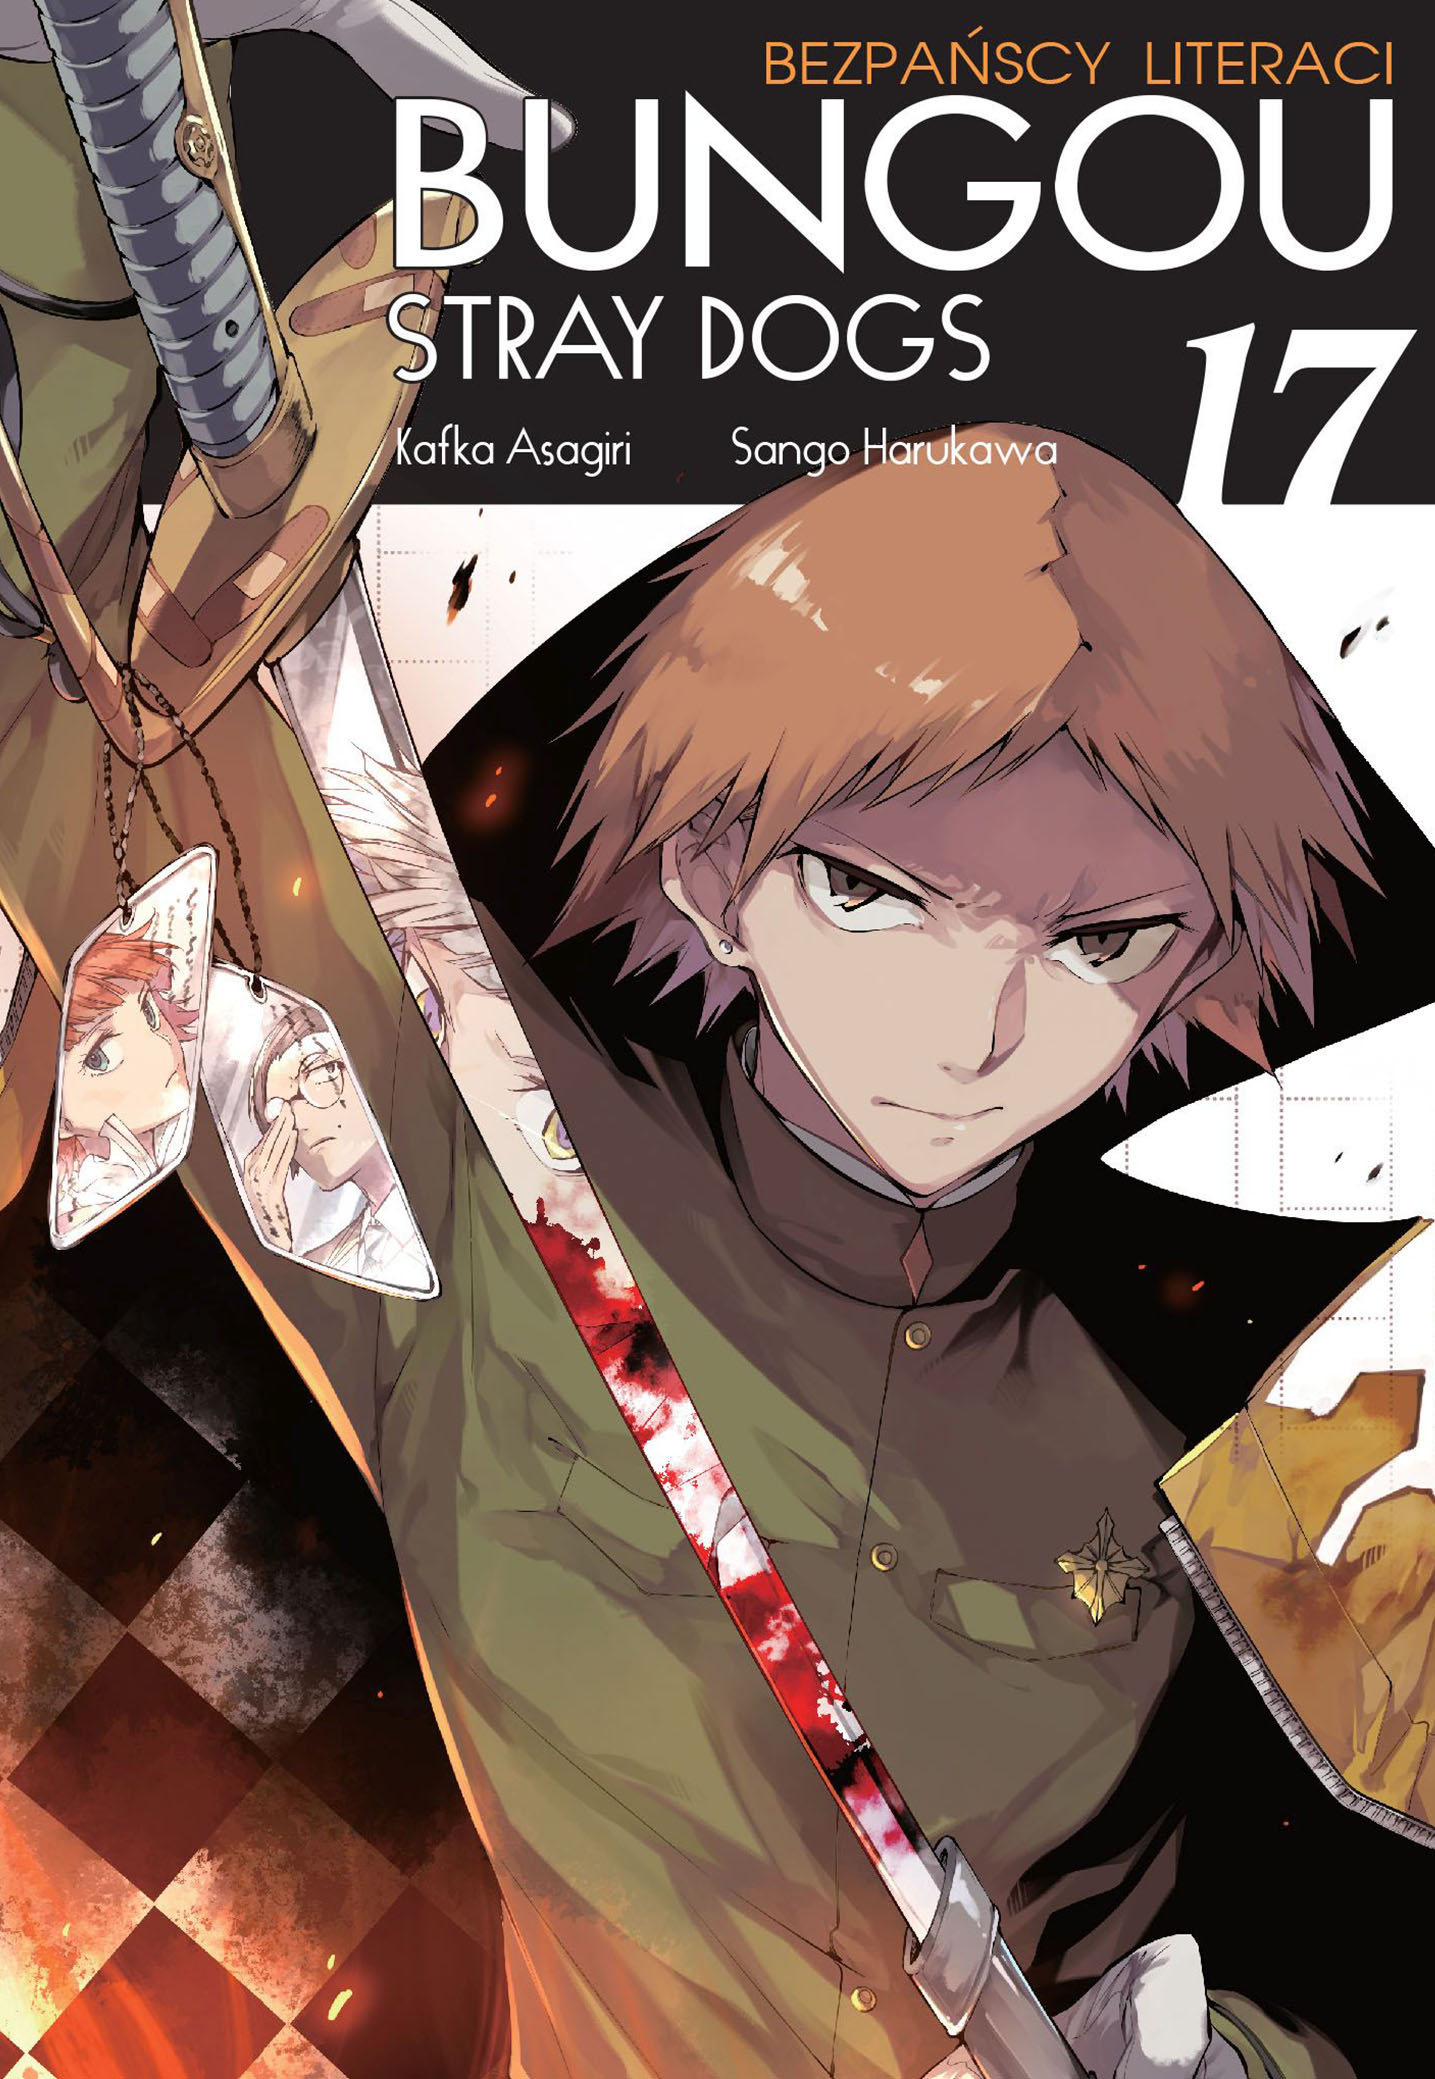 Bungou Stray Dogs - Bezpańscy Literaci: tom 17